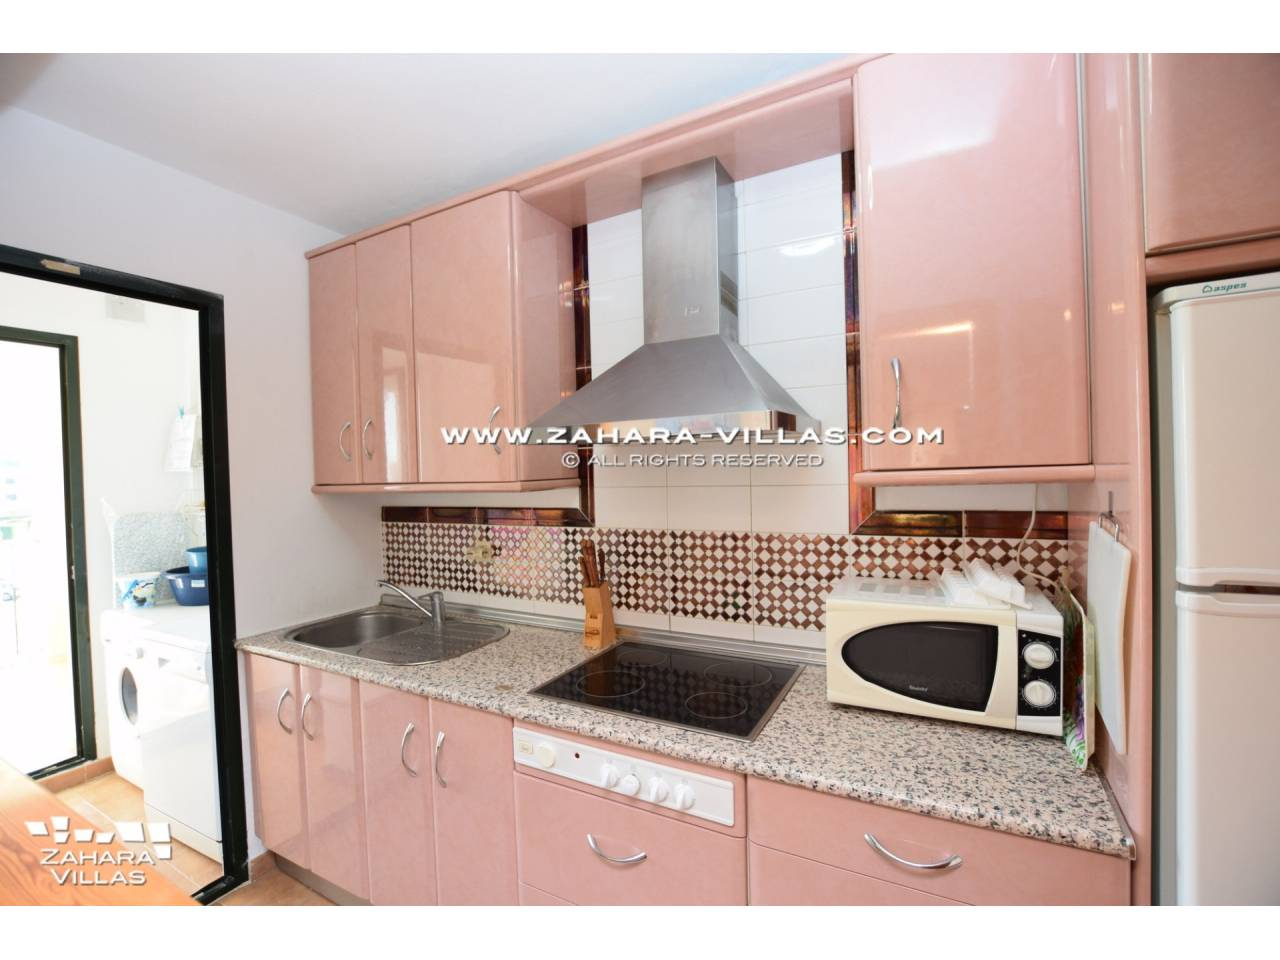 Imagen 14 de Apartment for sale in Zahara de los Atunes